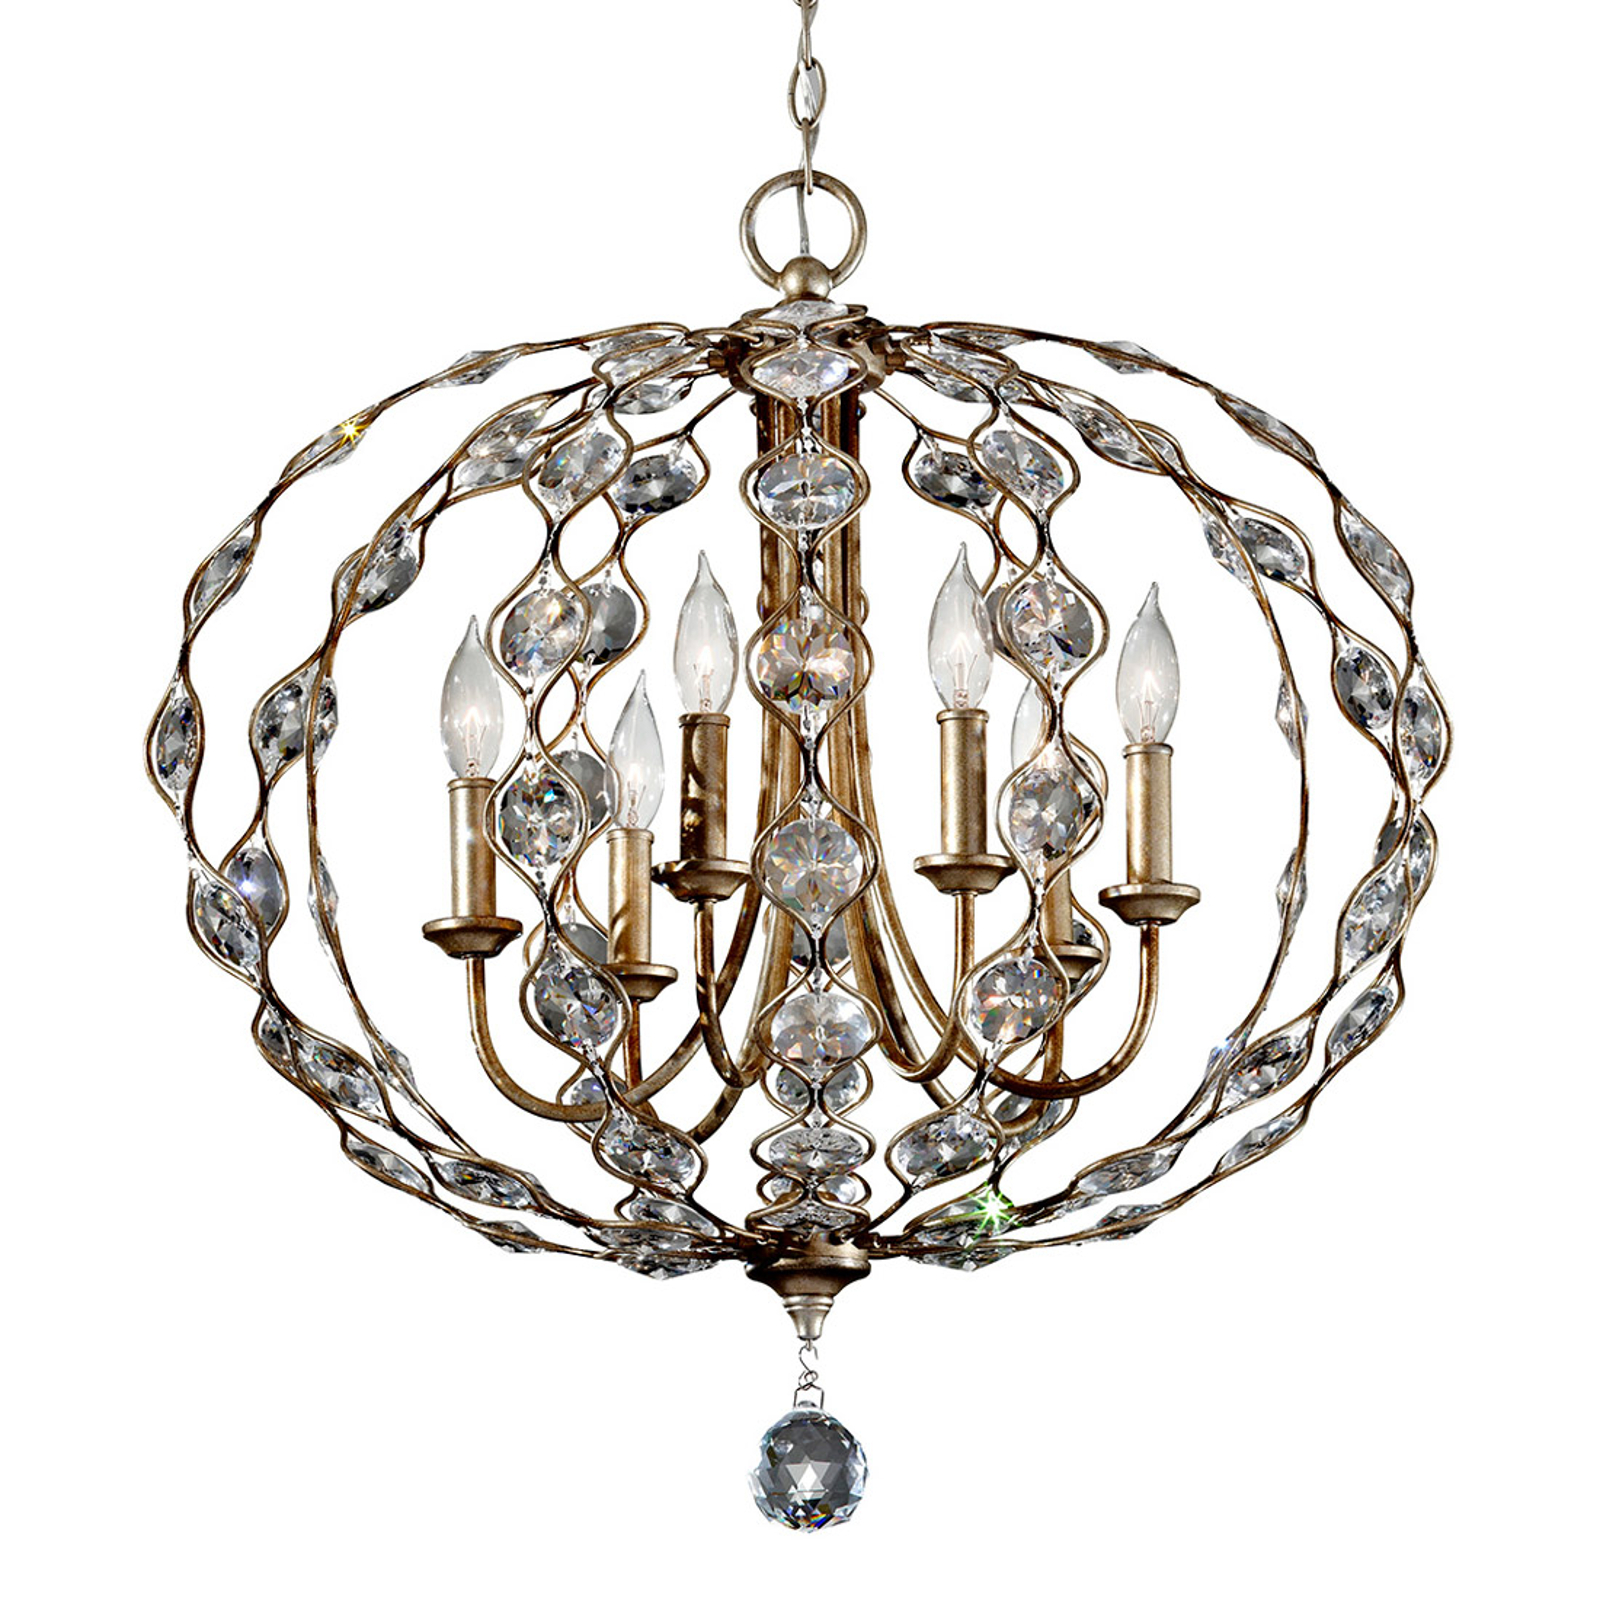 Leila richly-decorated crystal chandelier, 6 bulbs_3048307_1